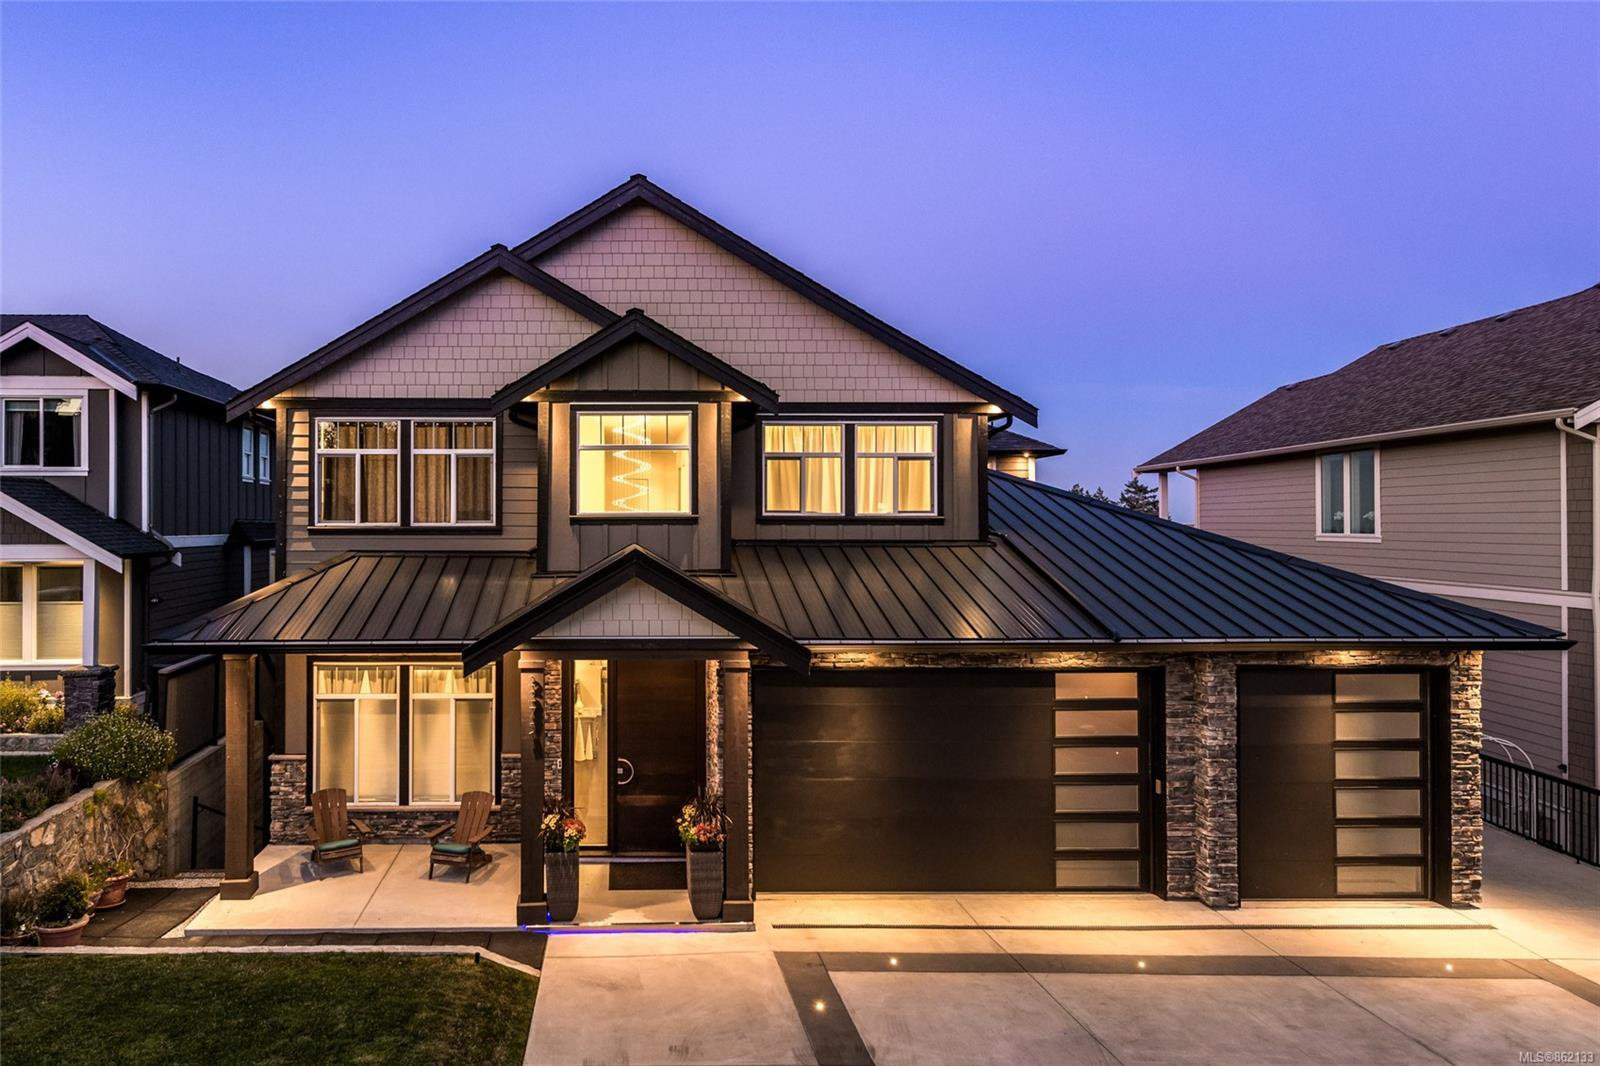 Main Photo: 2275 Nicklaus Dr in : La Bear Mountain House for sale (Langford)  : MLS®# 862133